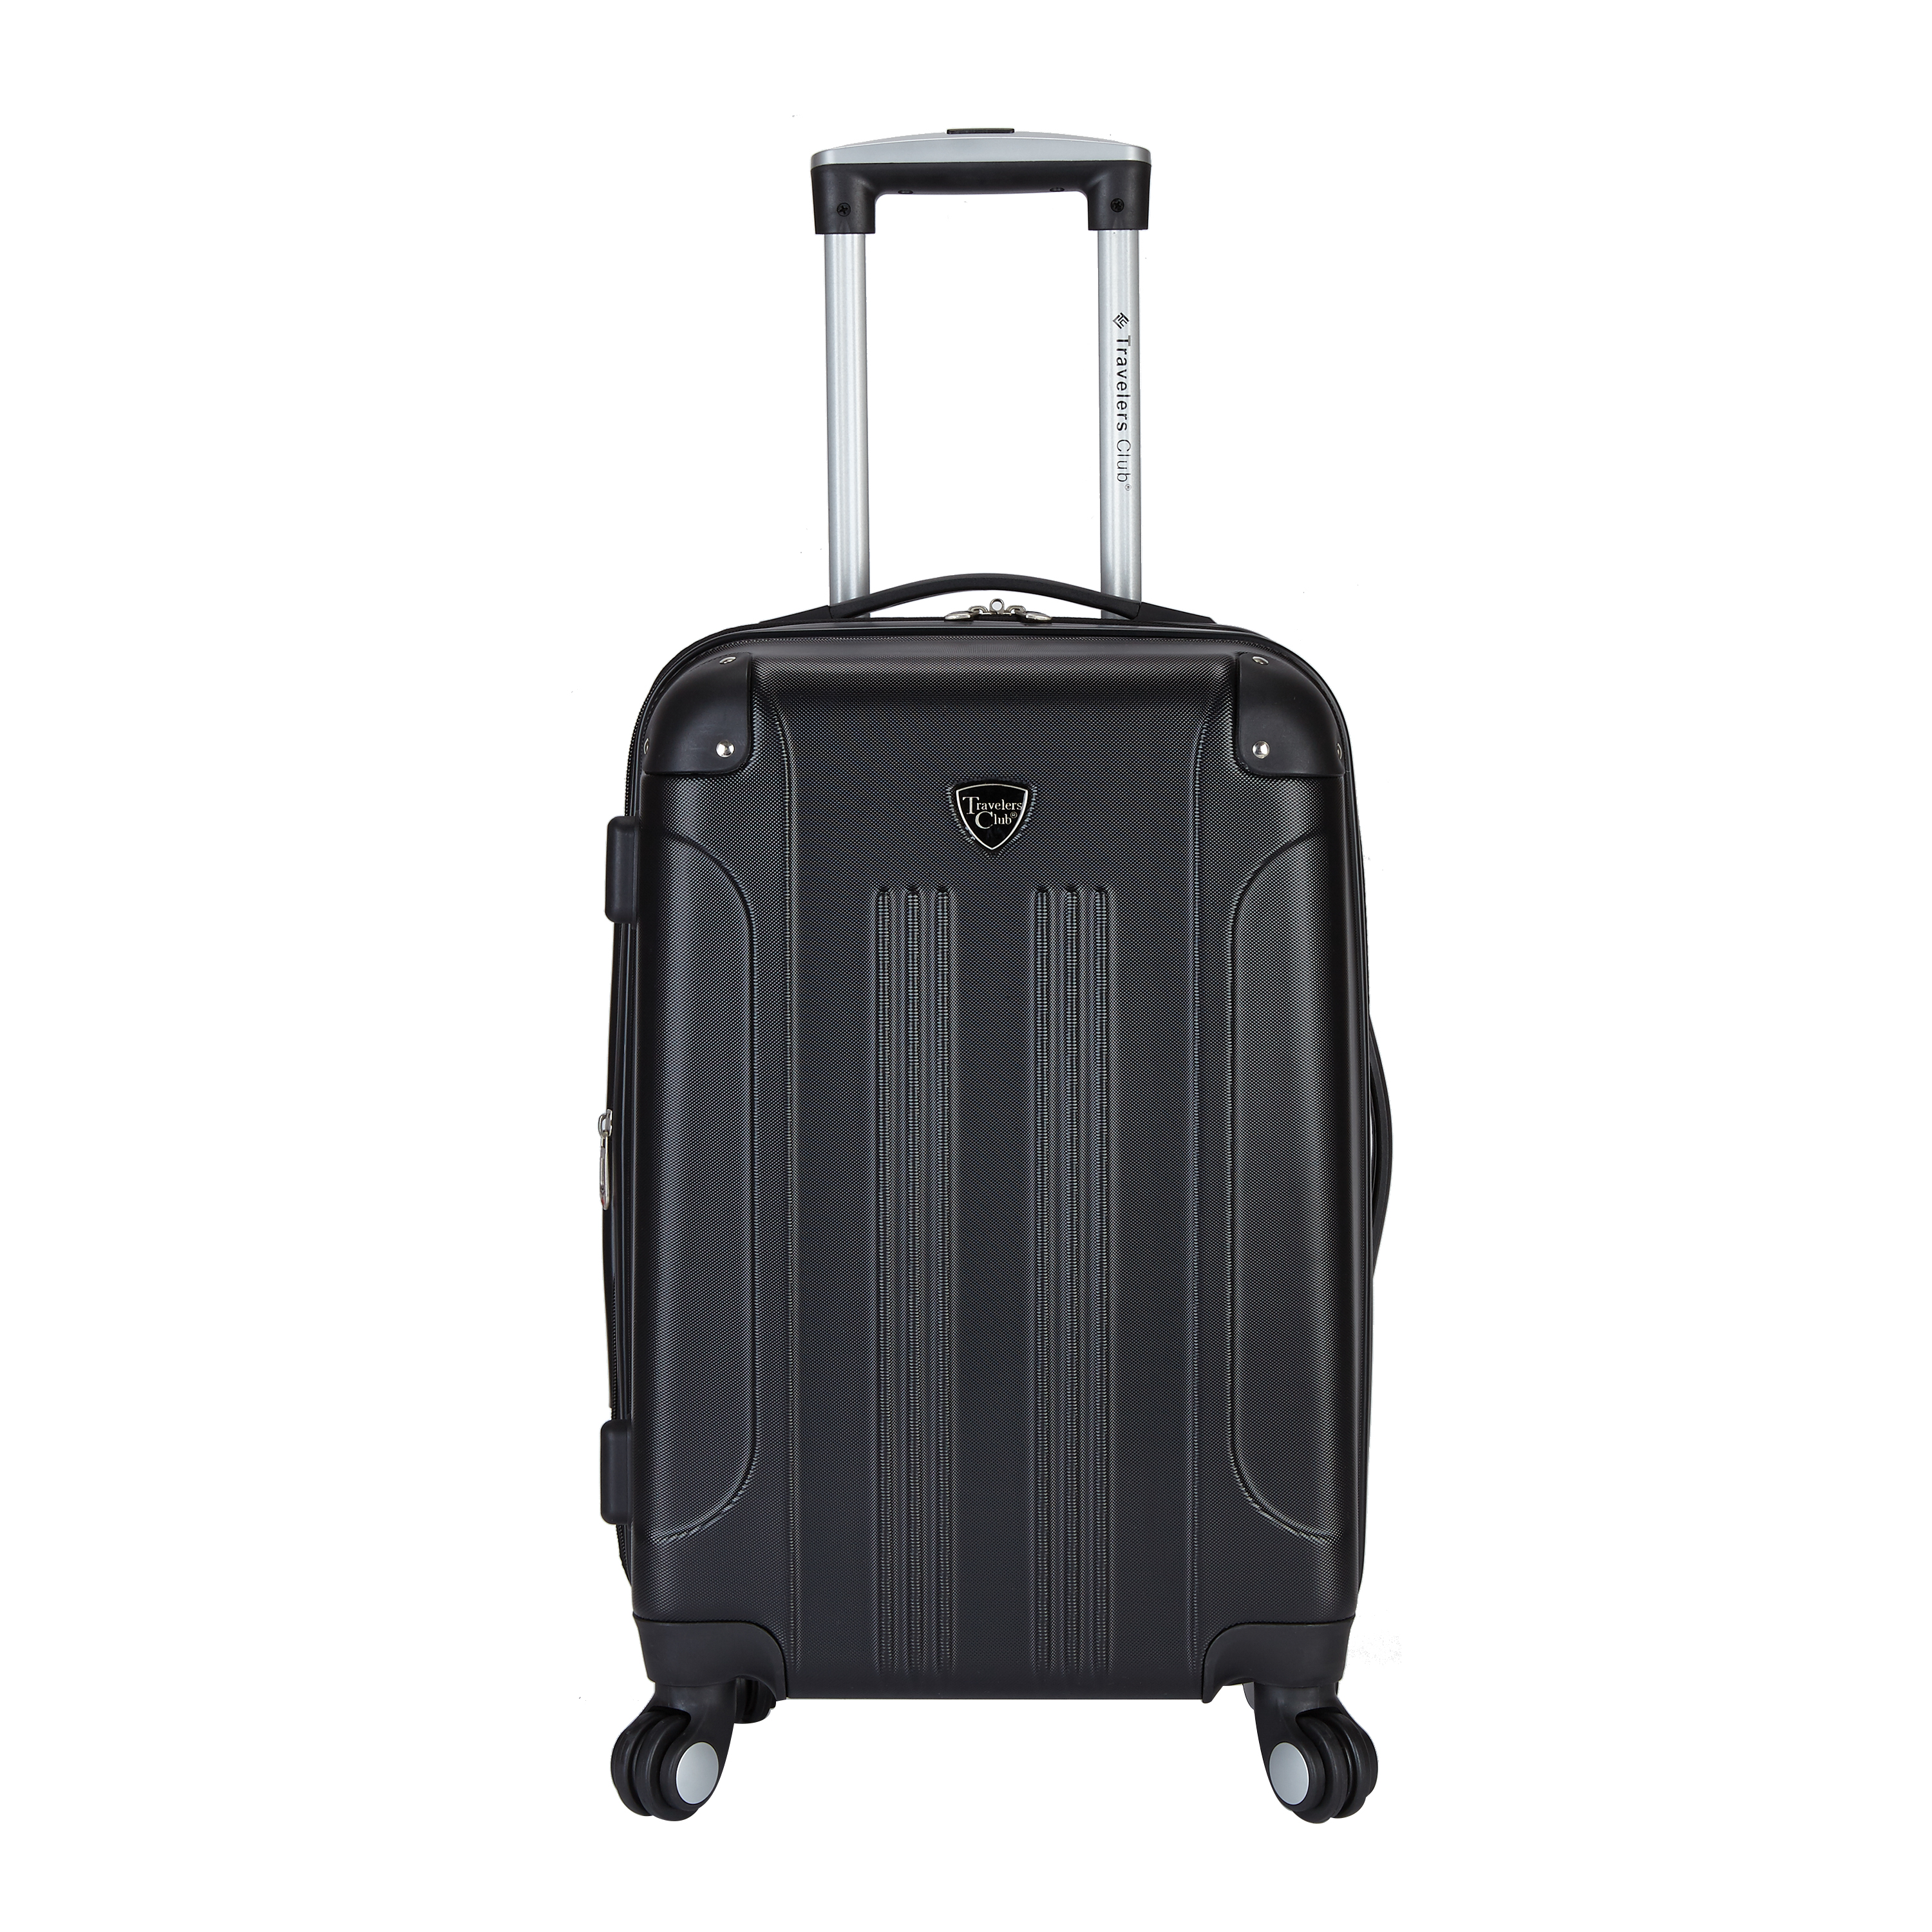 Travelers Club HS-20720-001 Chicago 20 in. Hardside ABS Expandable Carry-On, Black